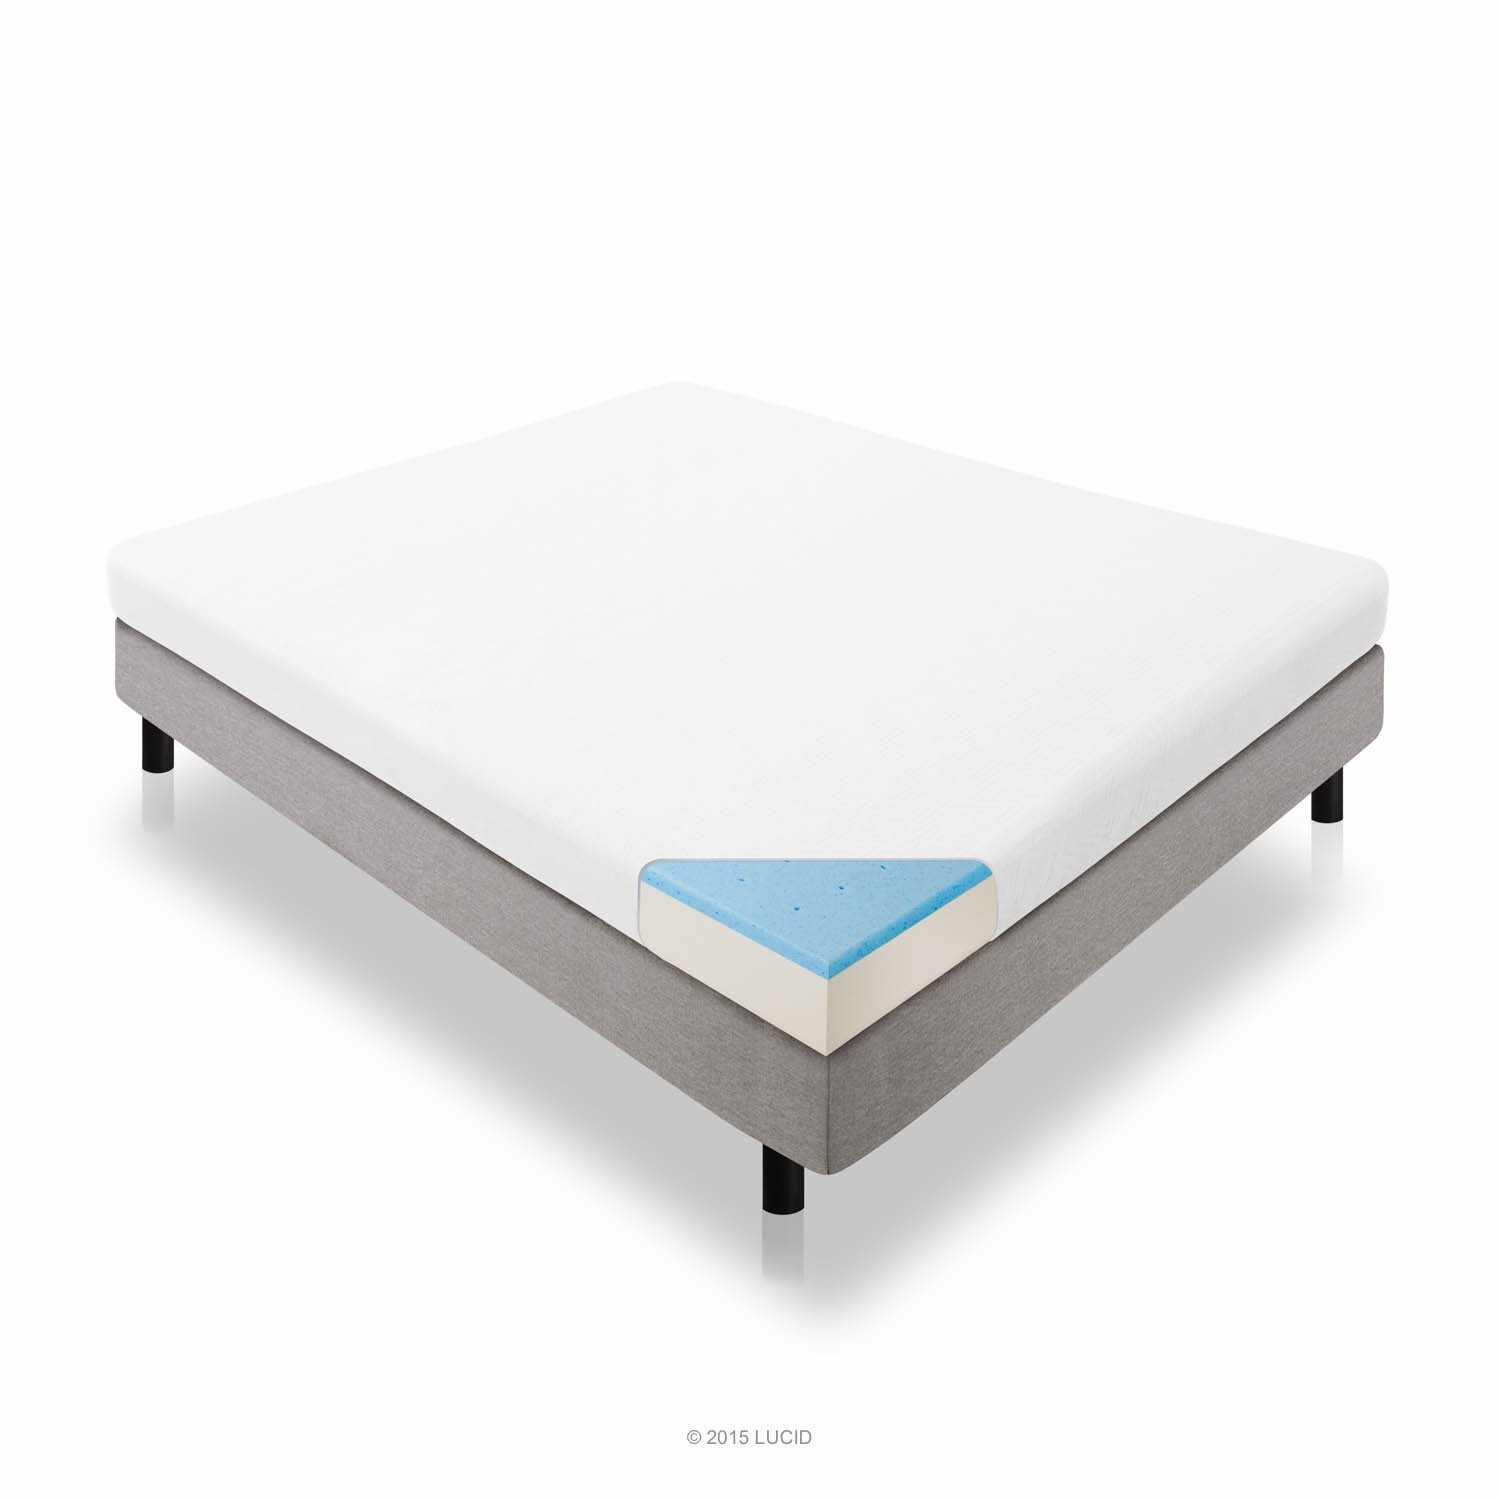 LUCID 5 Inch Gel Memory Foam Mattress – Dual-Layered – CertiPUR-US Certified – Firm Feel – Queen Size